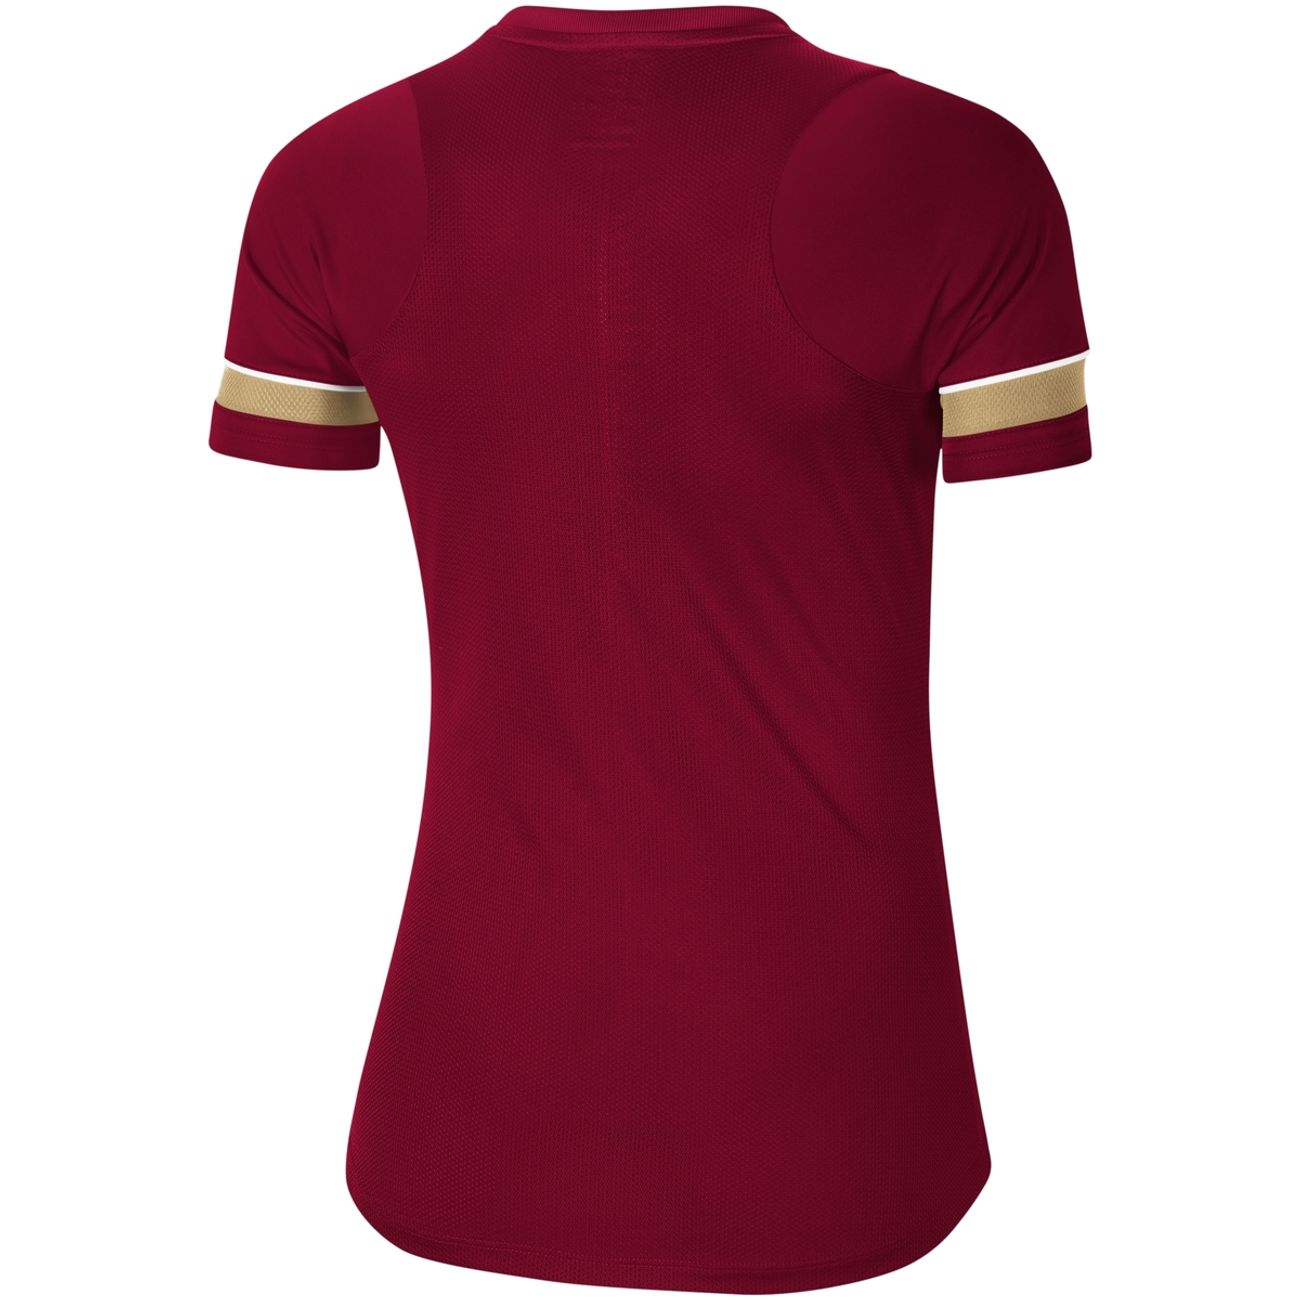 Football femme NIKE Maillot femme Nike Dri-FIT Academy